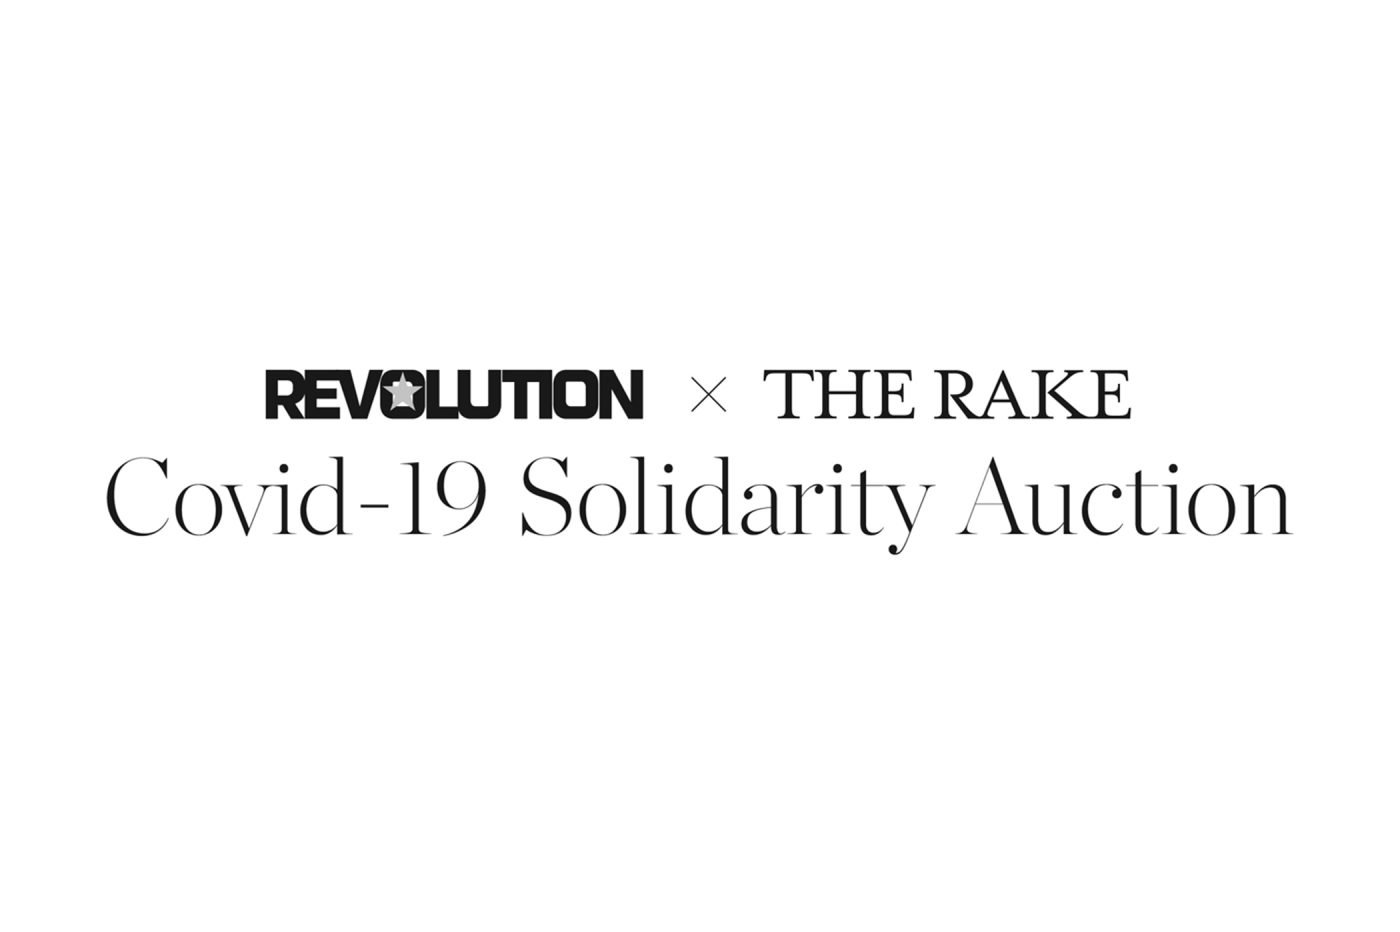 Aukcje Revolution x The Rake COVID-19 Solidarity Auction